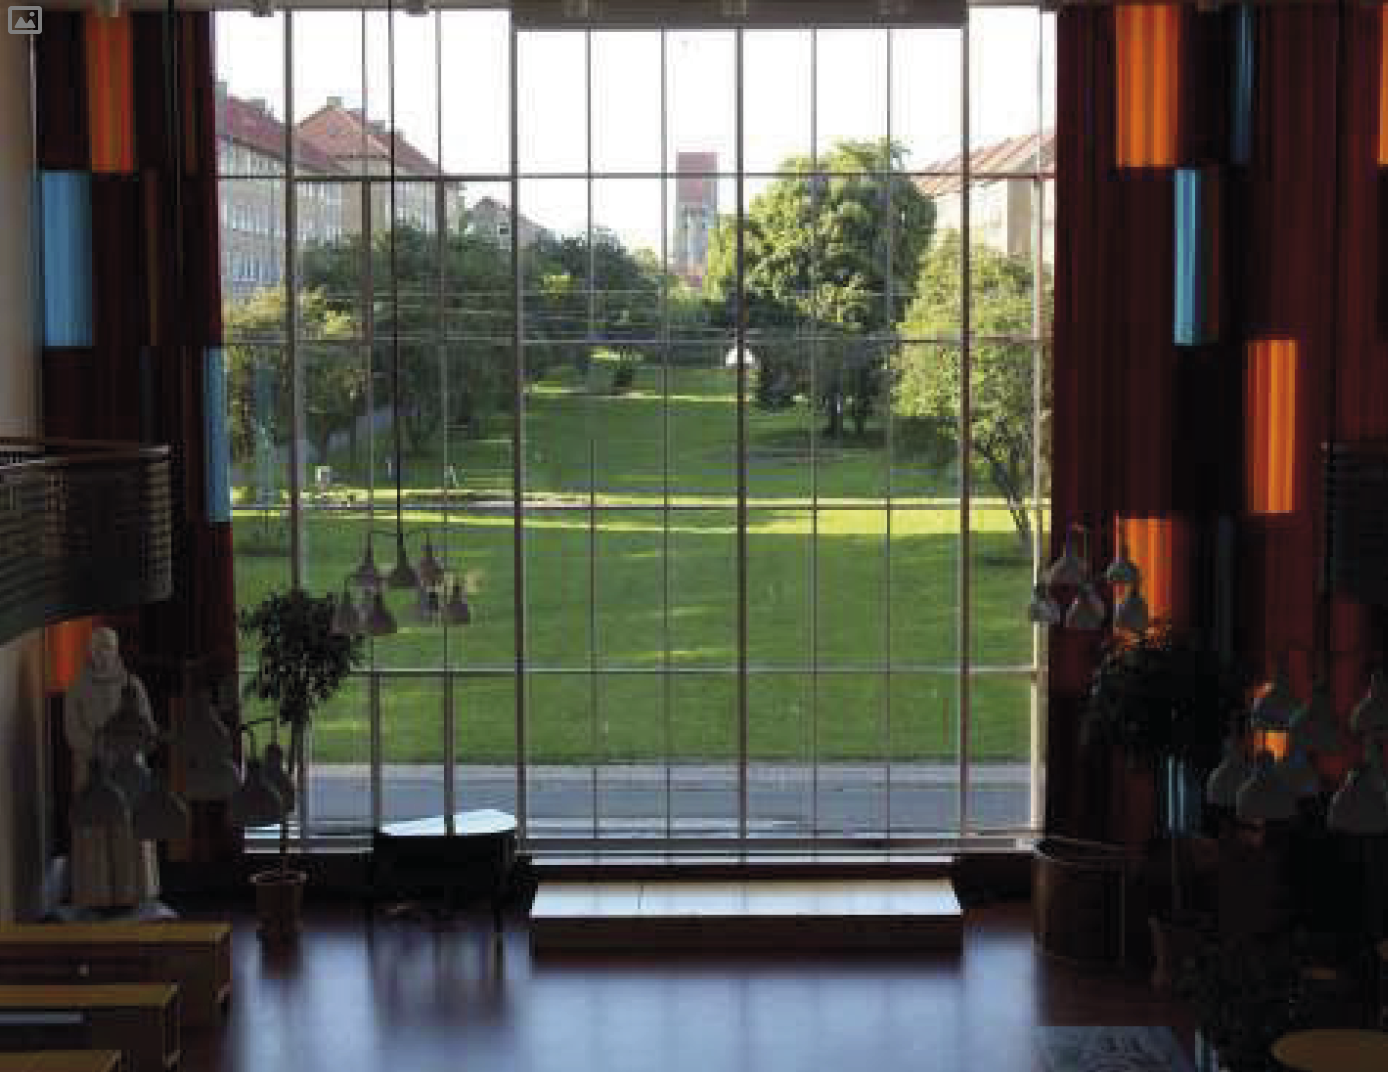 The park seen from the school towards the church.